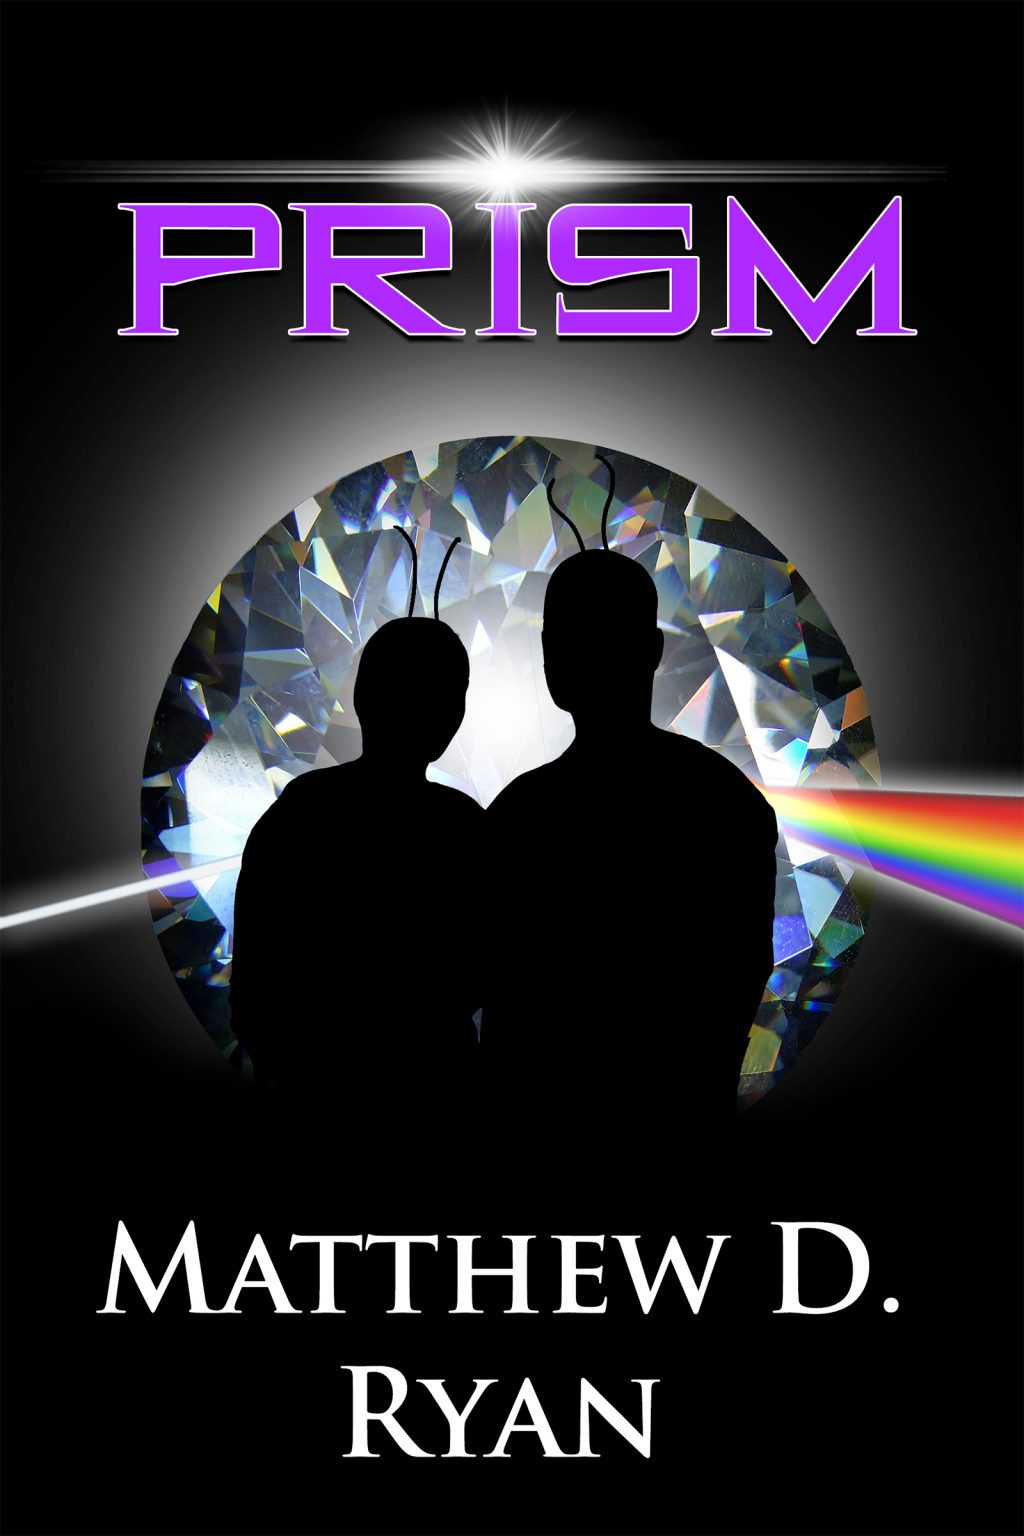 Prism by Matthew D. Ryan Release Day